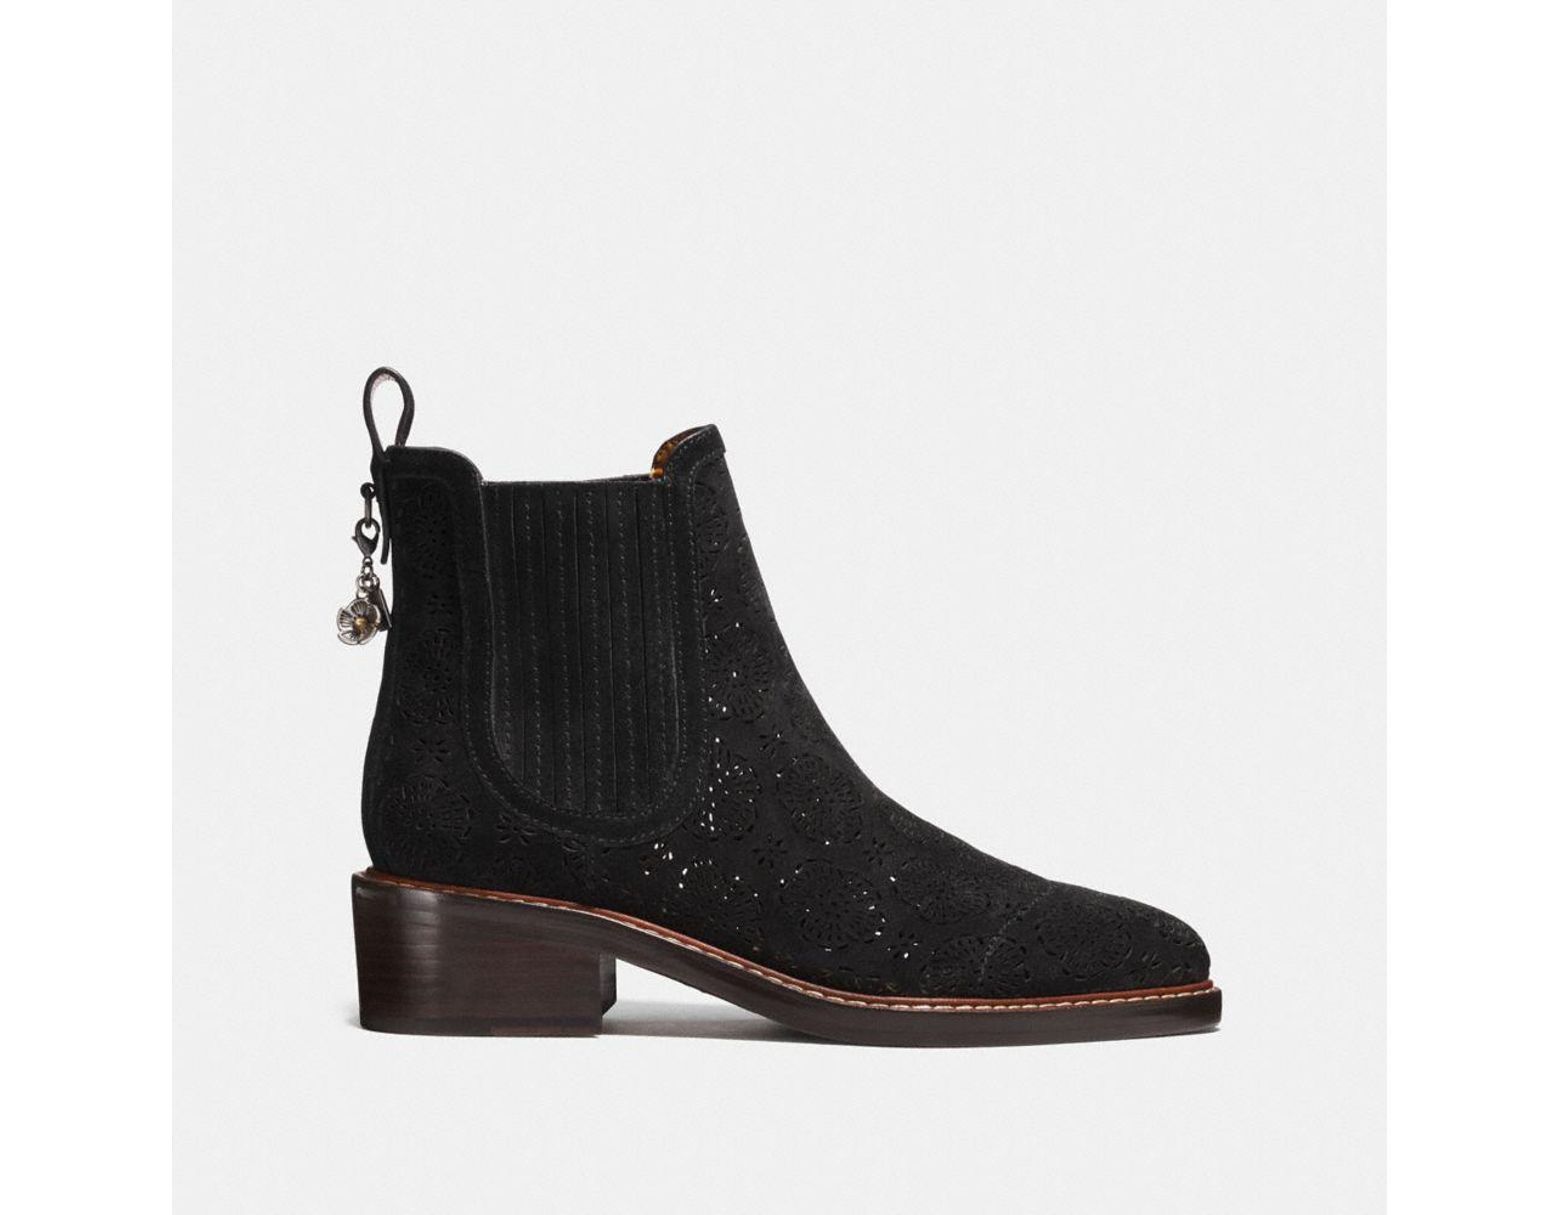 43888575aa COACH Bowery Chelsea Boot With Cut Out Tea Rose in Black - Save 21 ...